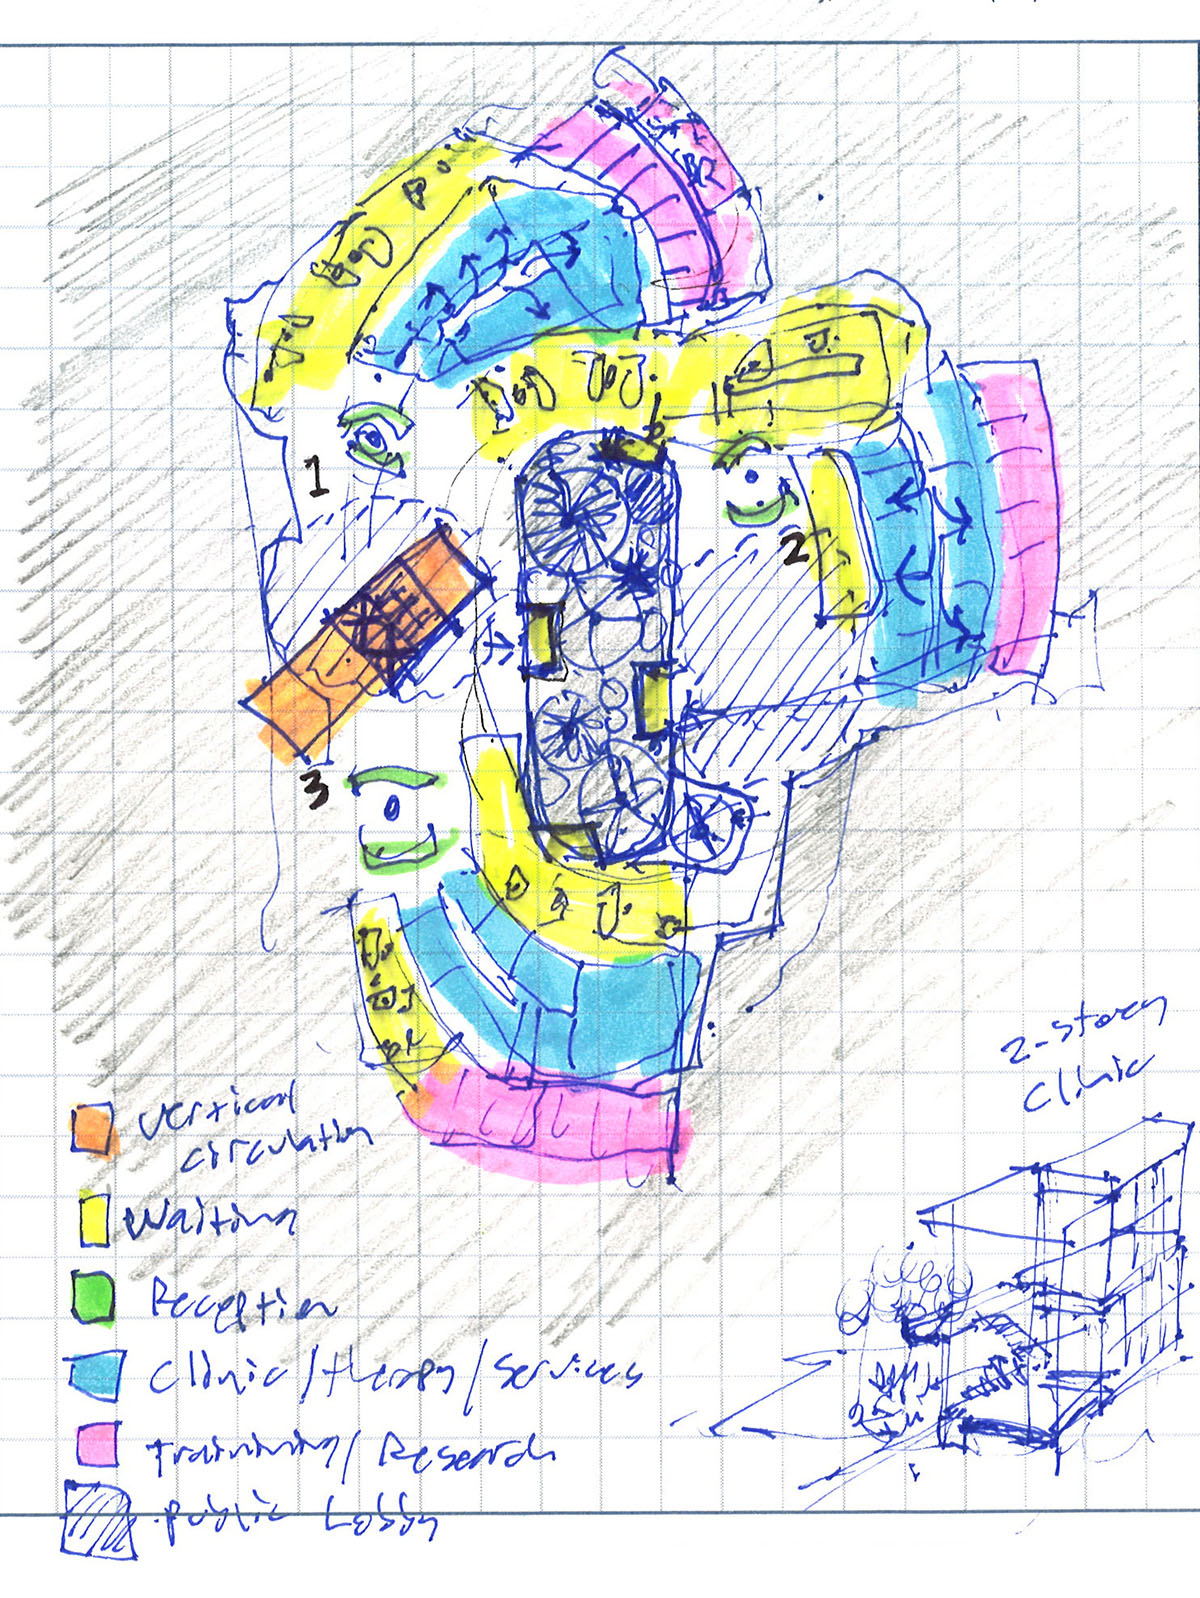 Pen sketch exploring possible layouts for the center for healing.